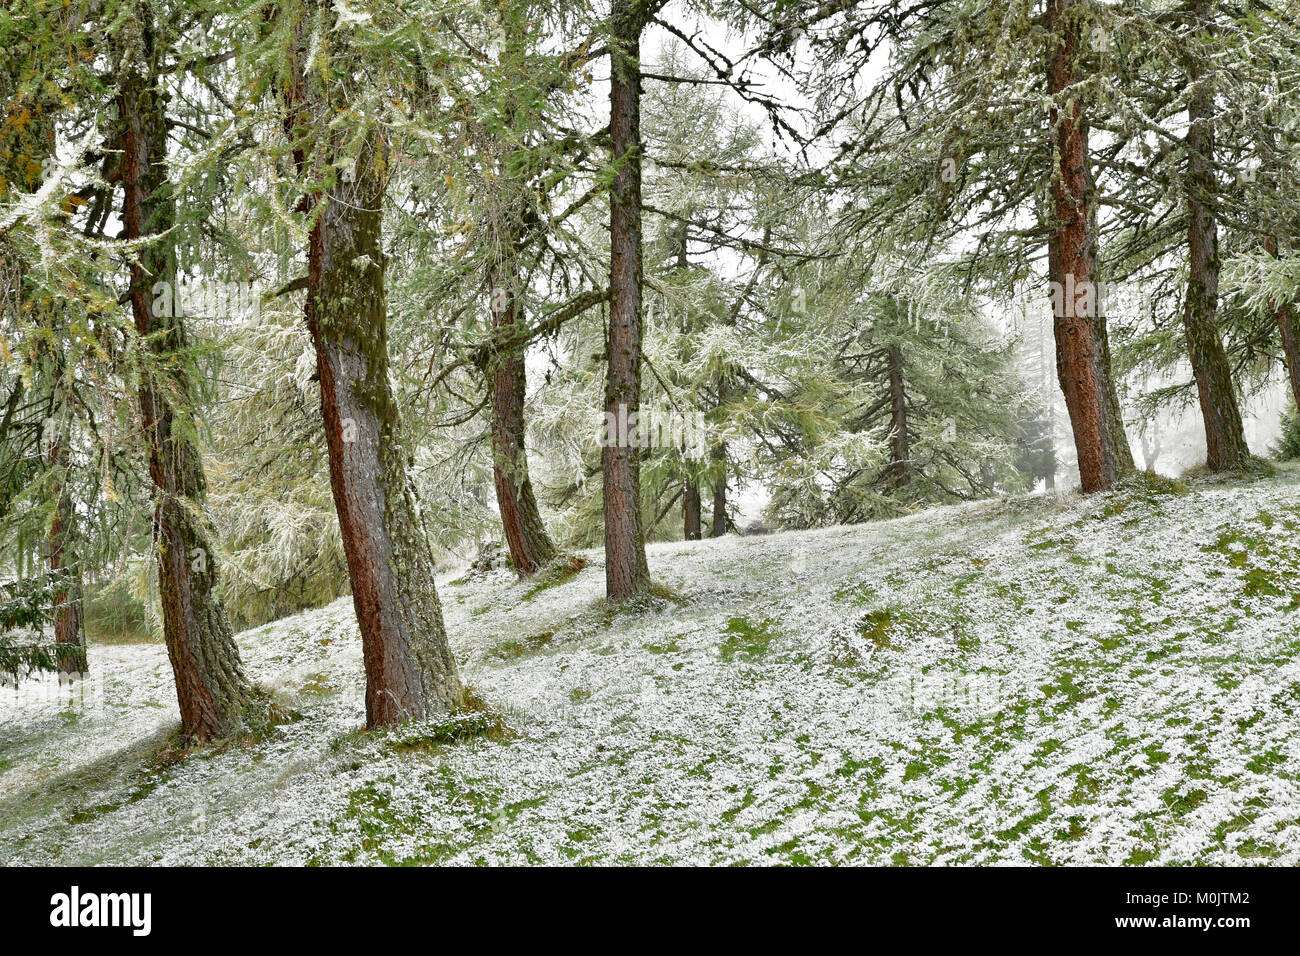 Forest with larch, first snowfall in autumn, Obernberg, Tyrol, Austria - Stock Image